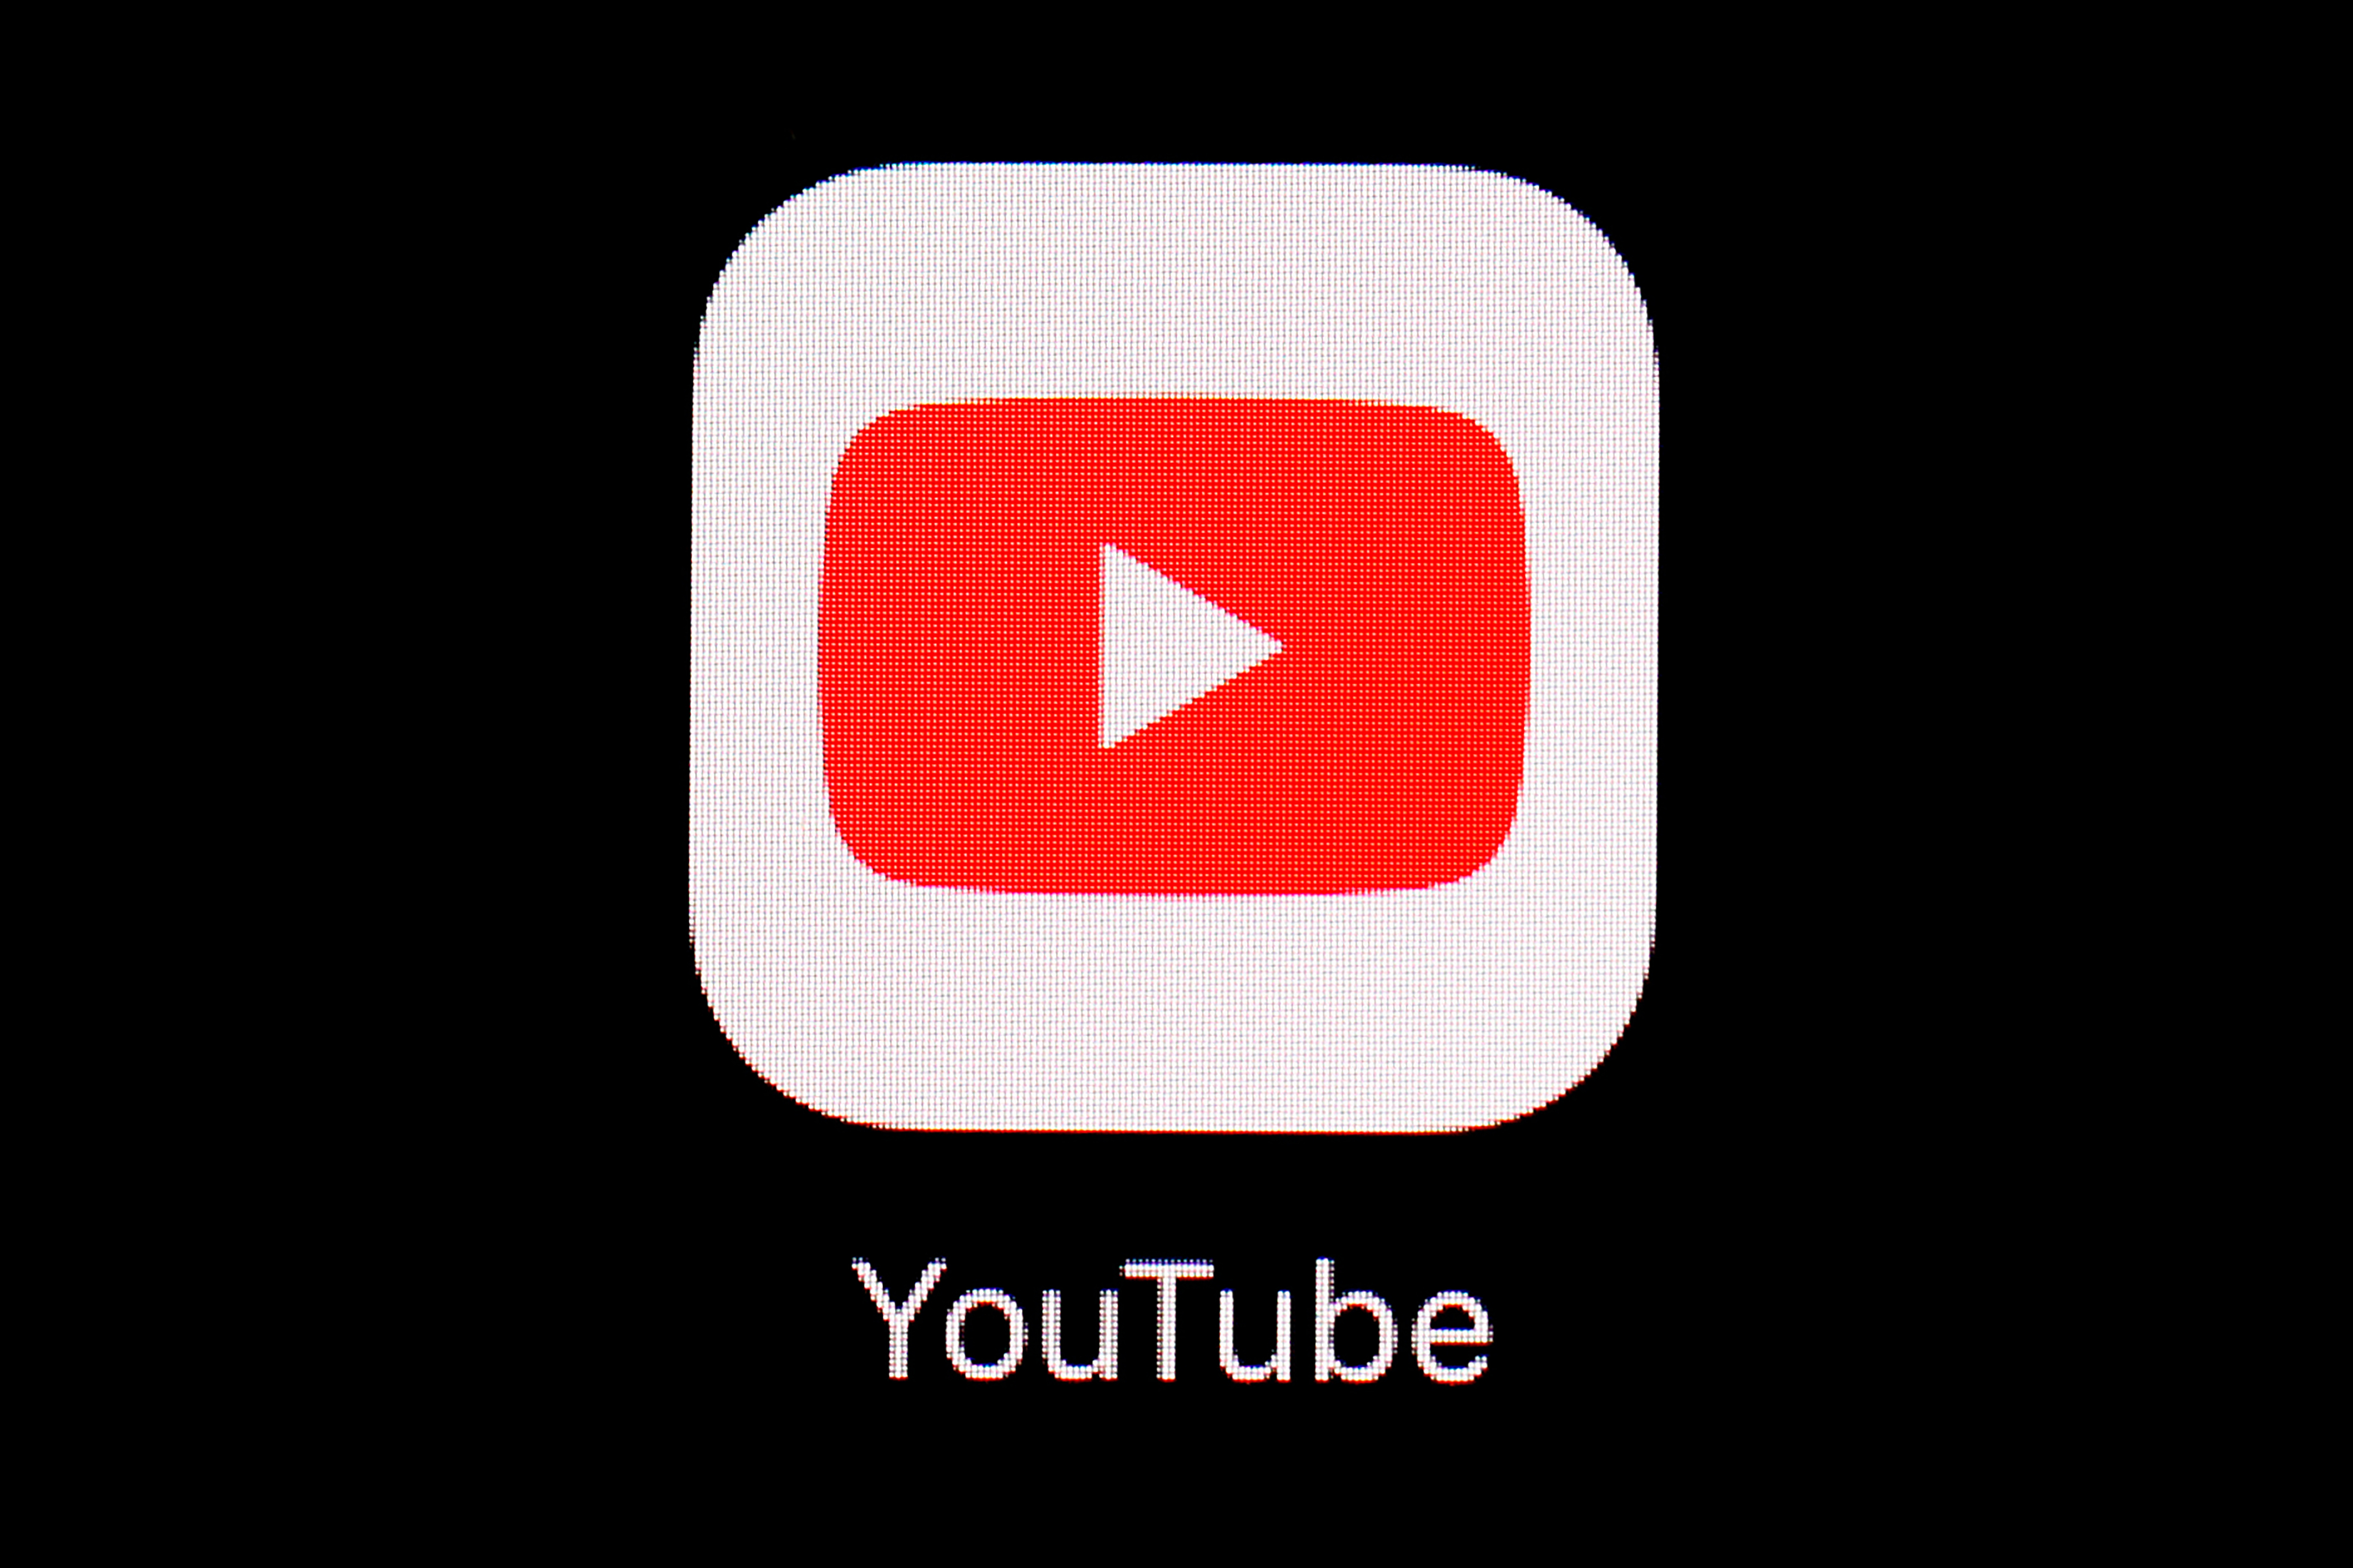 Video-sharing tech platform YouTube has announced immediate bans on false claims that vaccines are dangerous and cause health issues like autism, cancer or infertility.